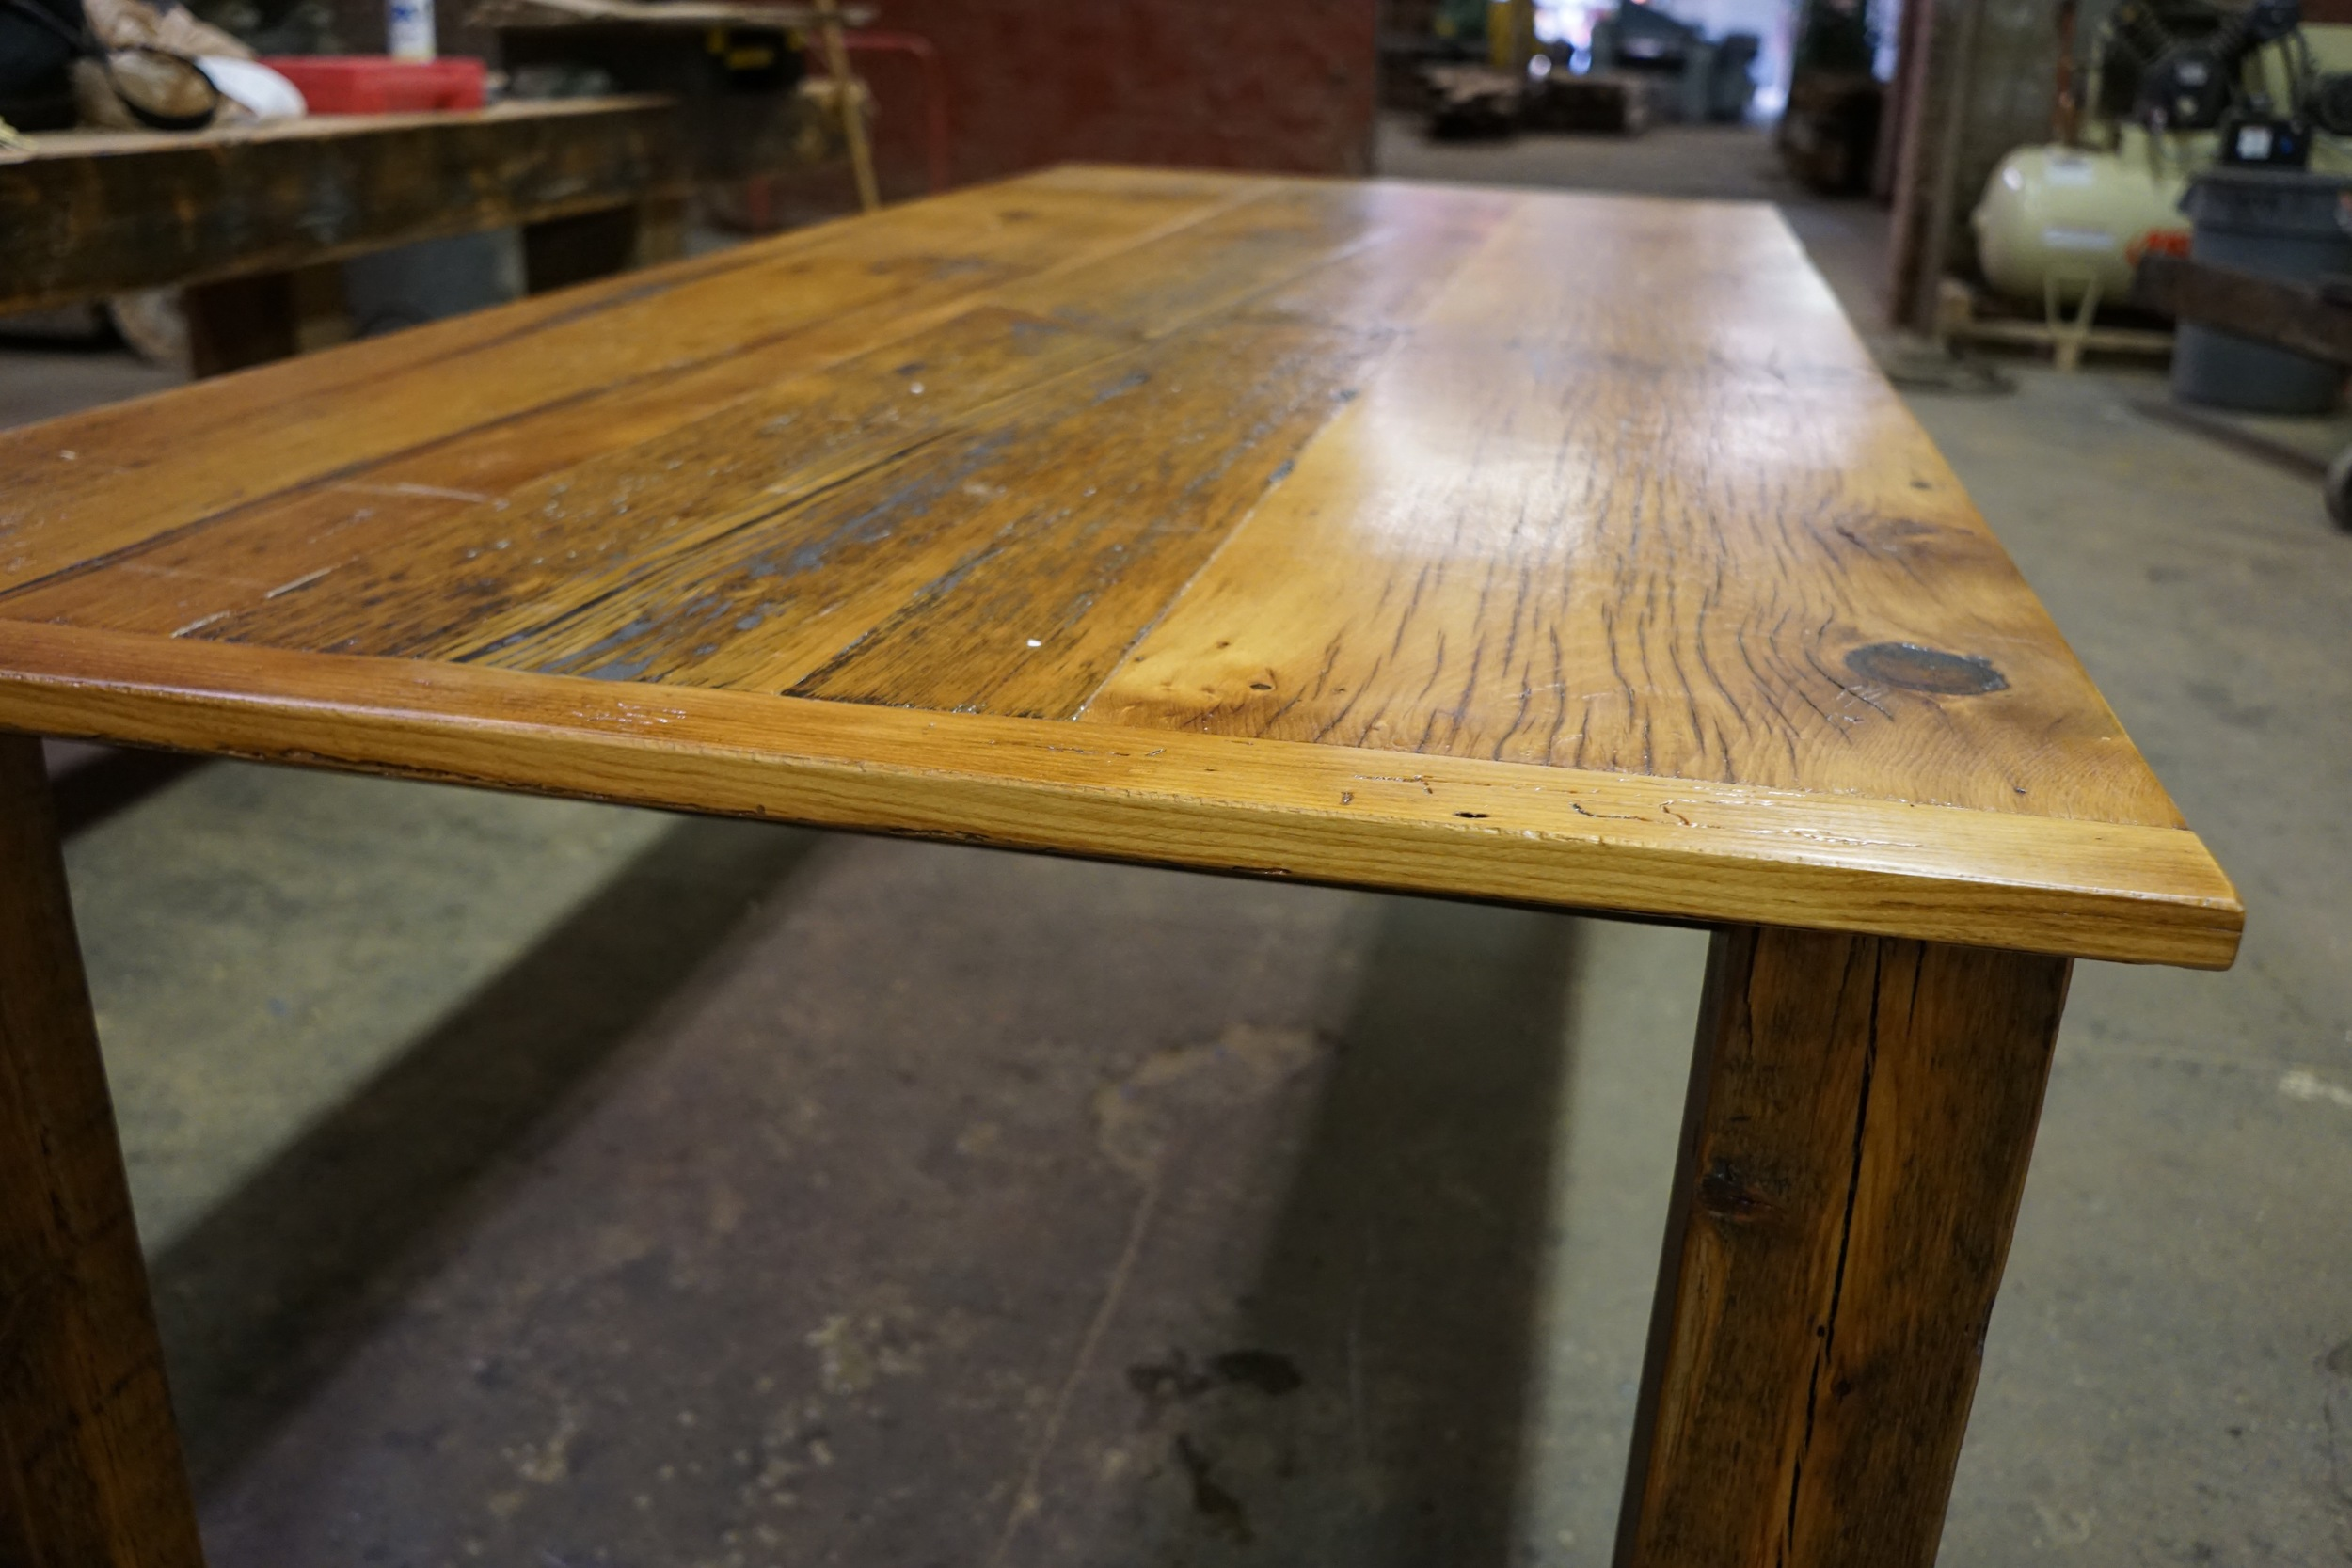 white pine table with yellow pine legs.jpg